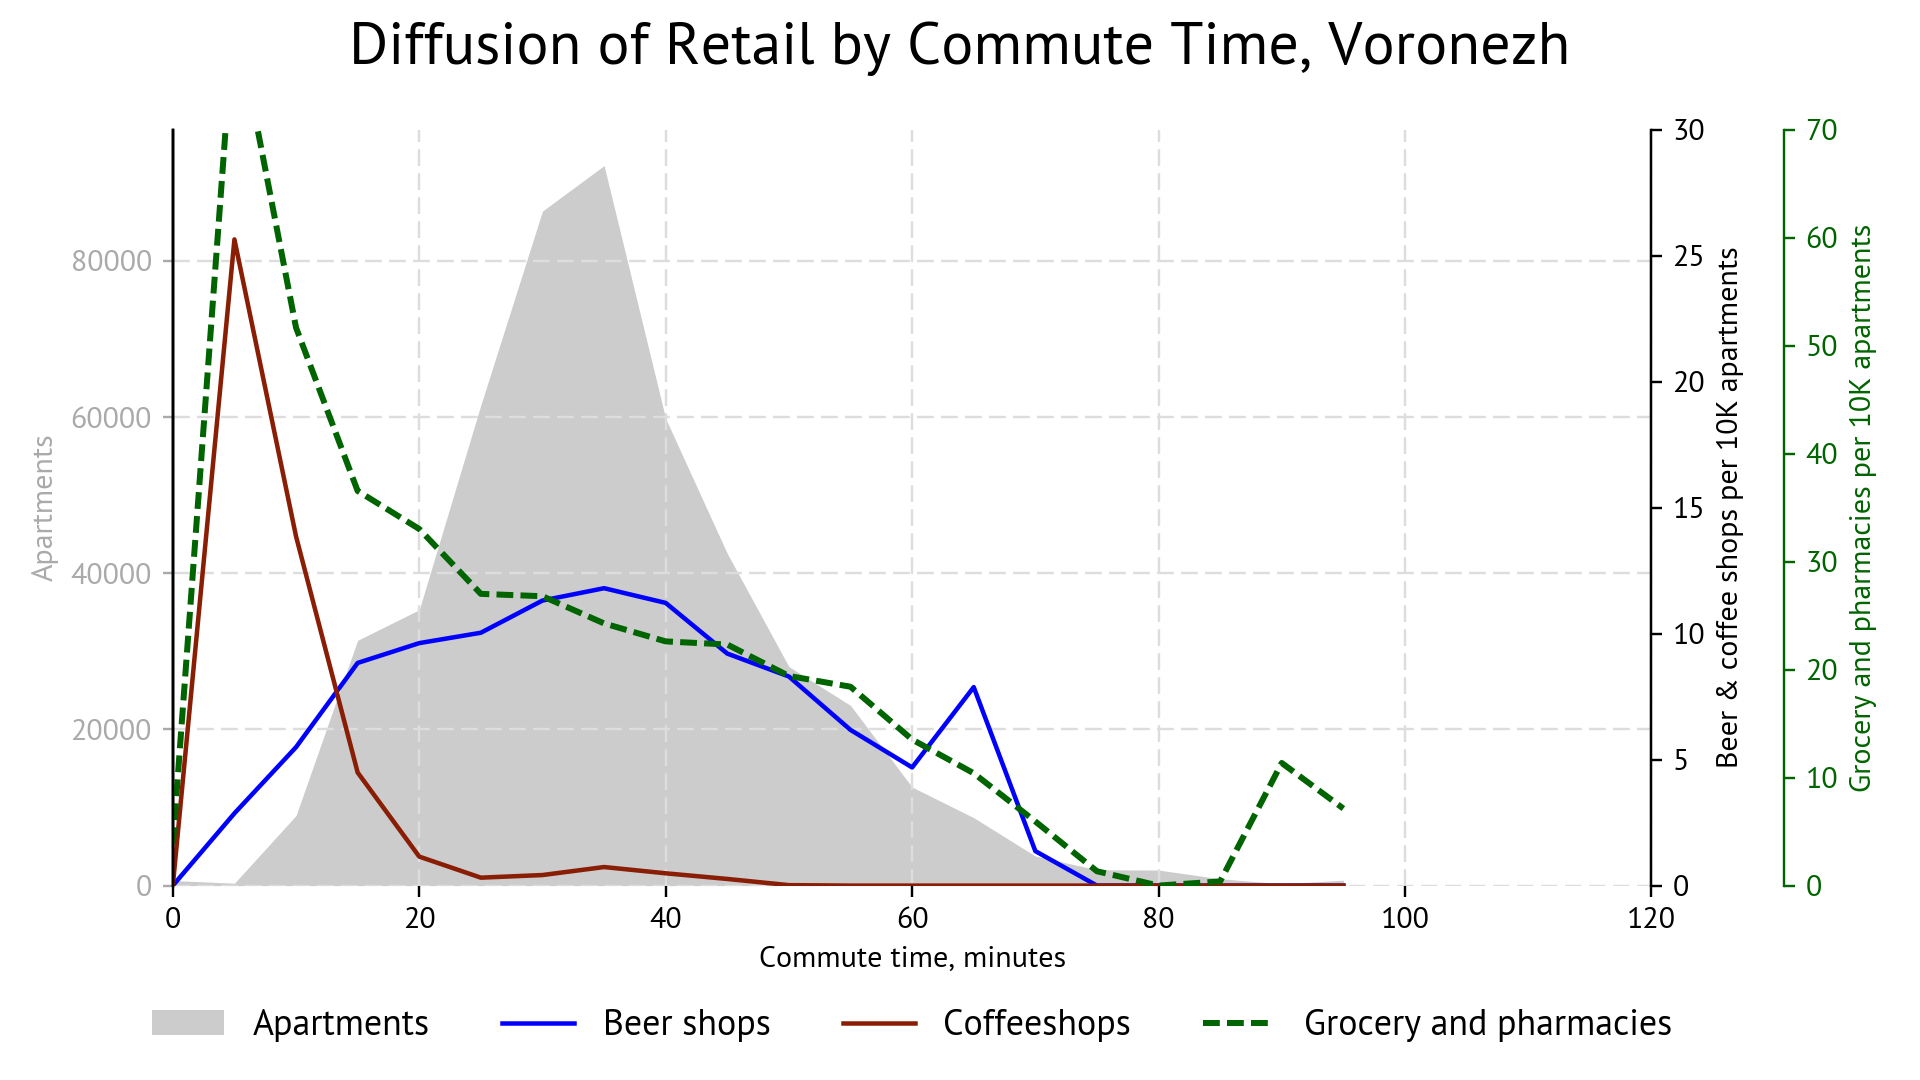 Chart: retail diffusion depending on commute time, Voronezh